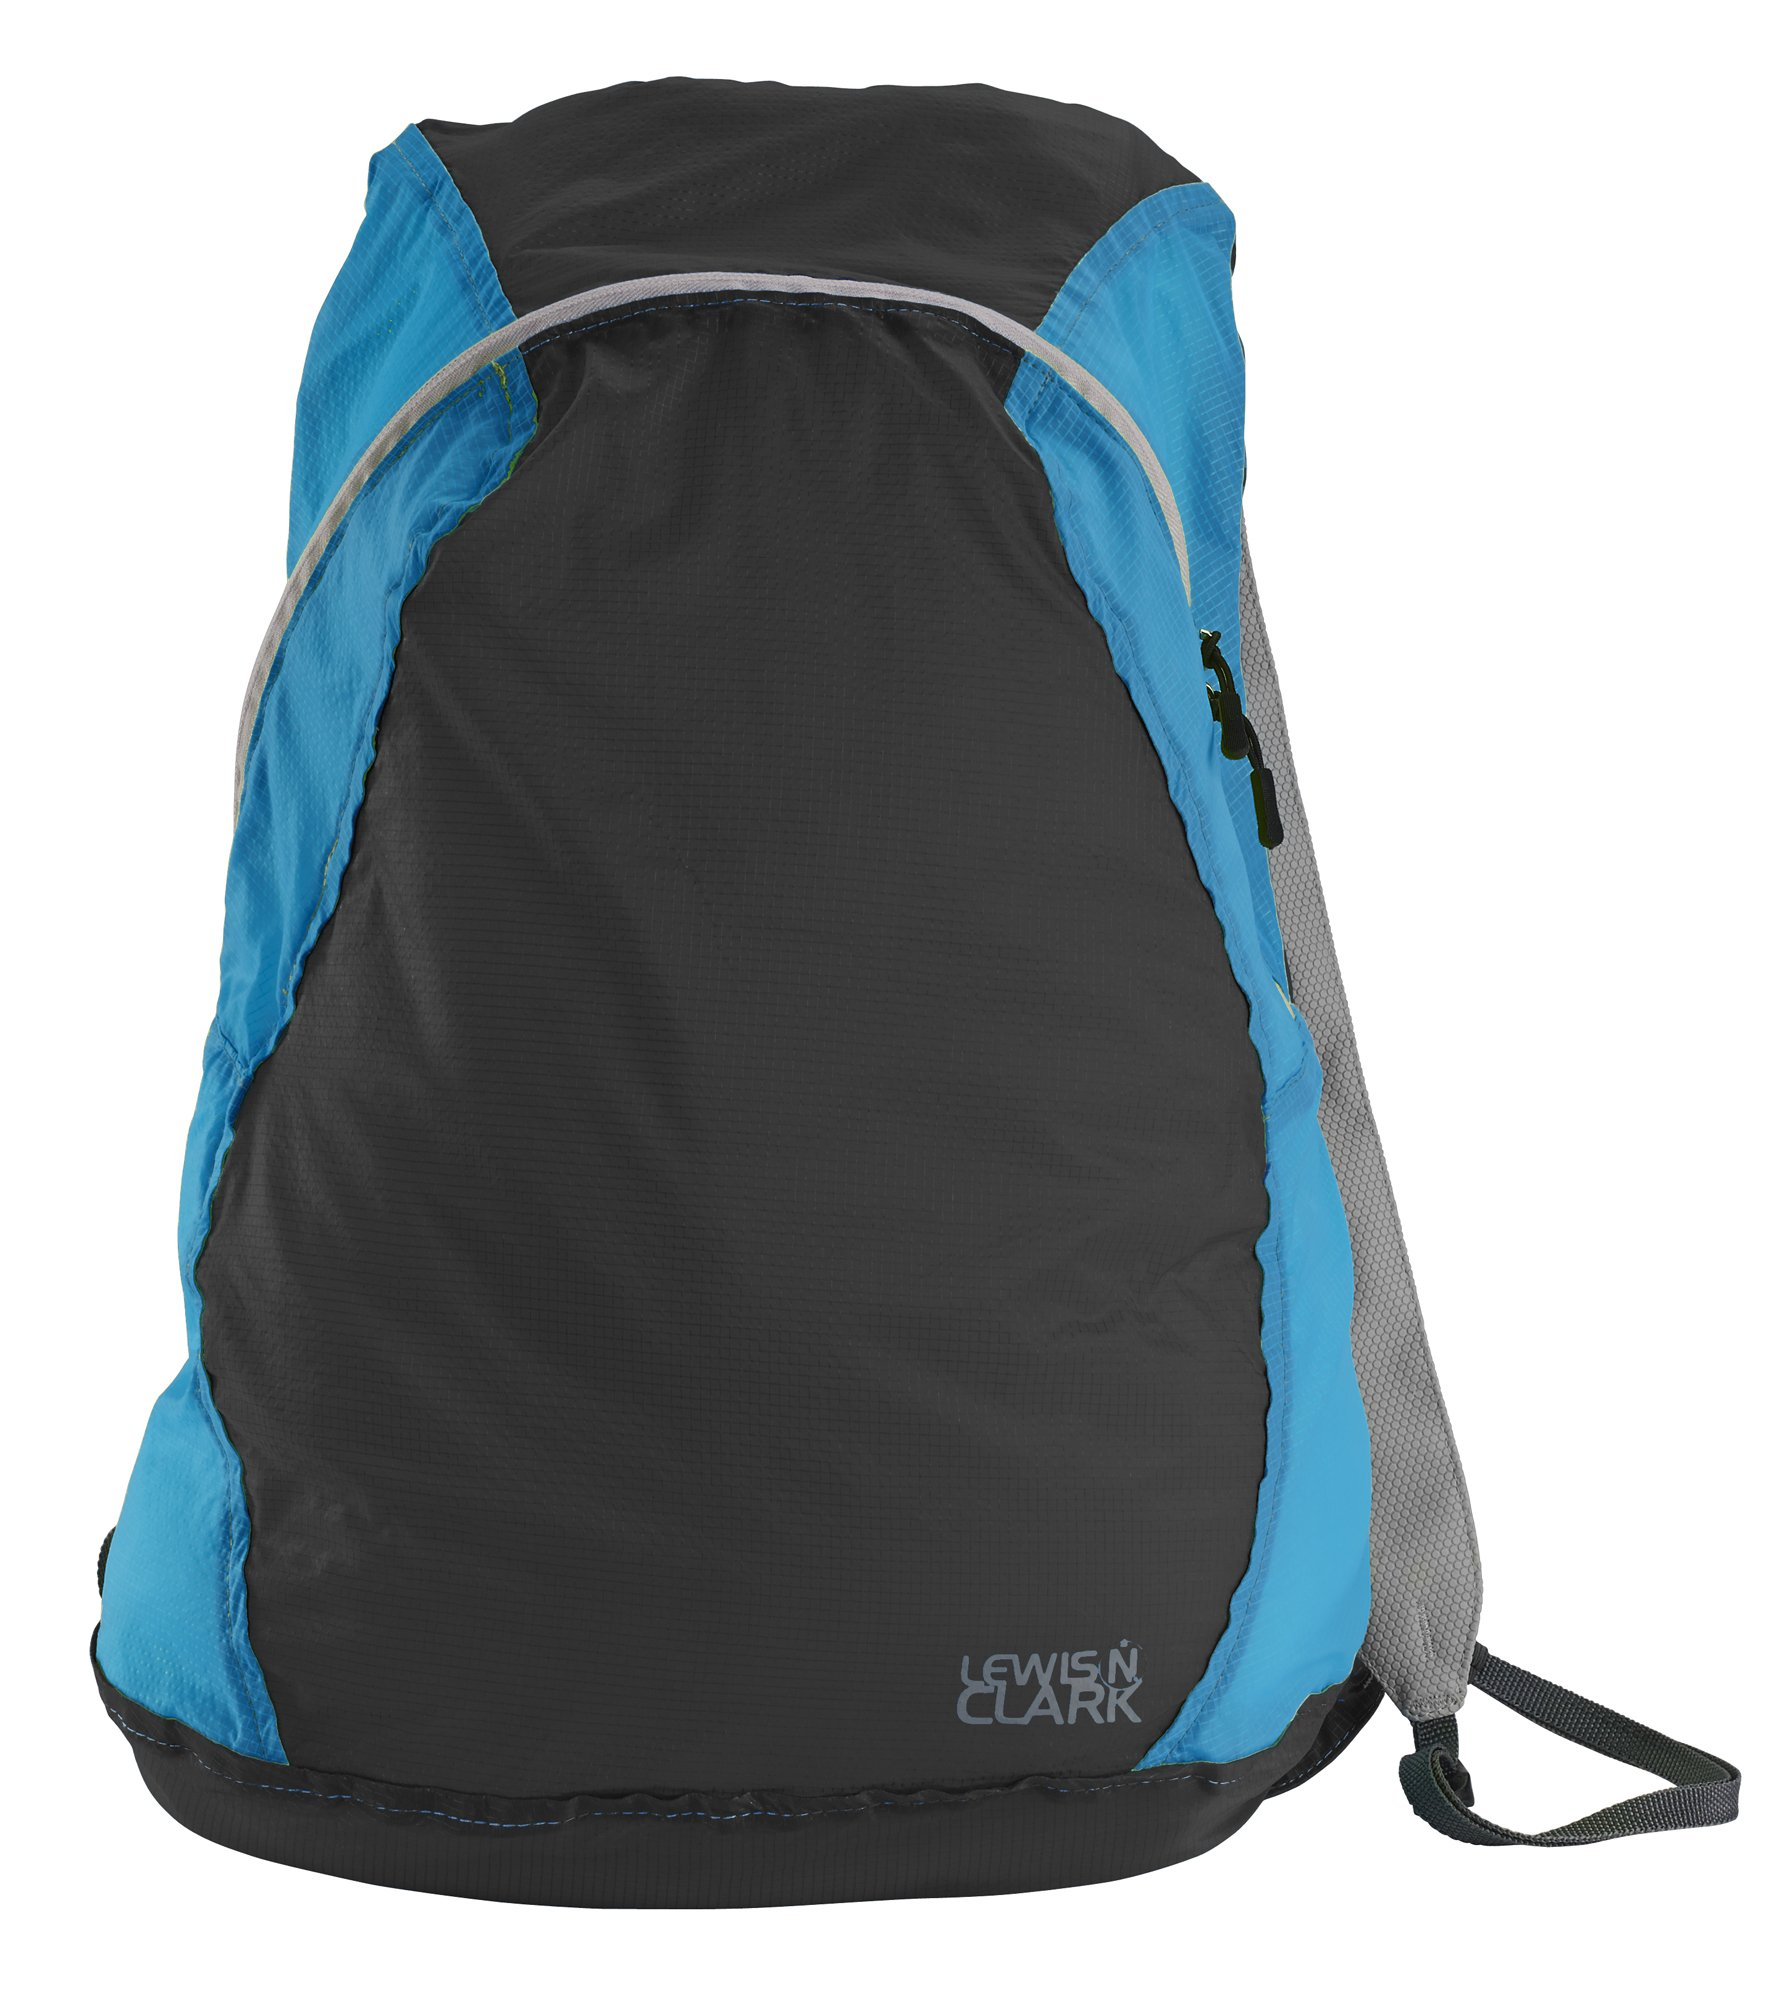 Lewis N Clark ElectroLight Multipurpose Packable Lightweight Travel Backpack, Charcoal/Bright Blue, One Size